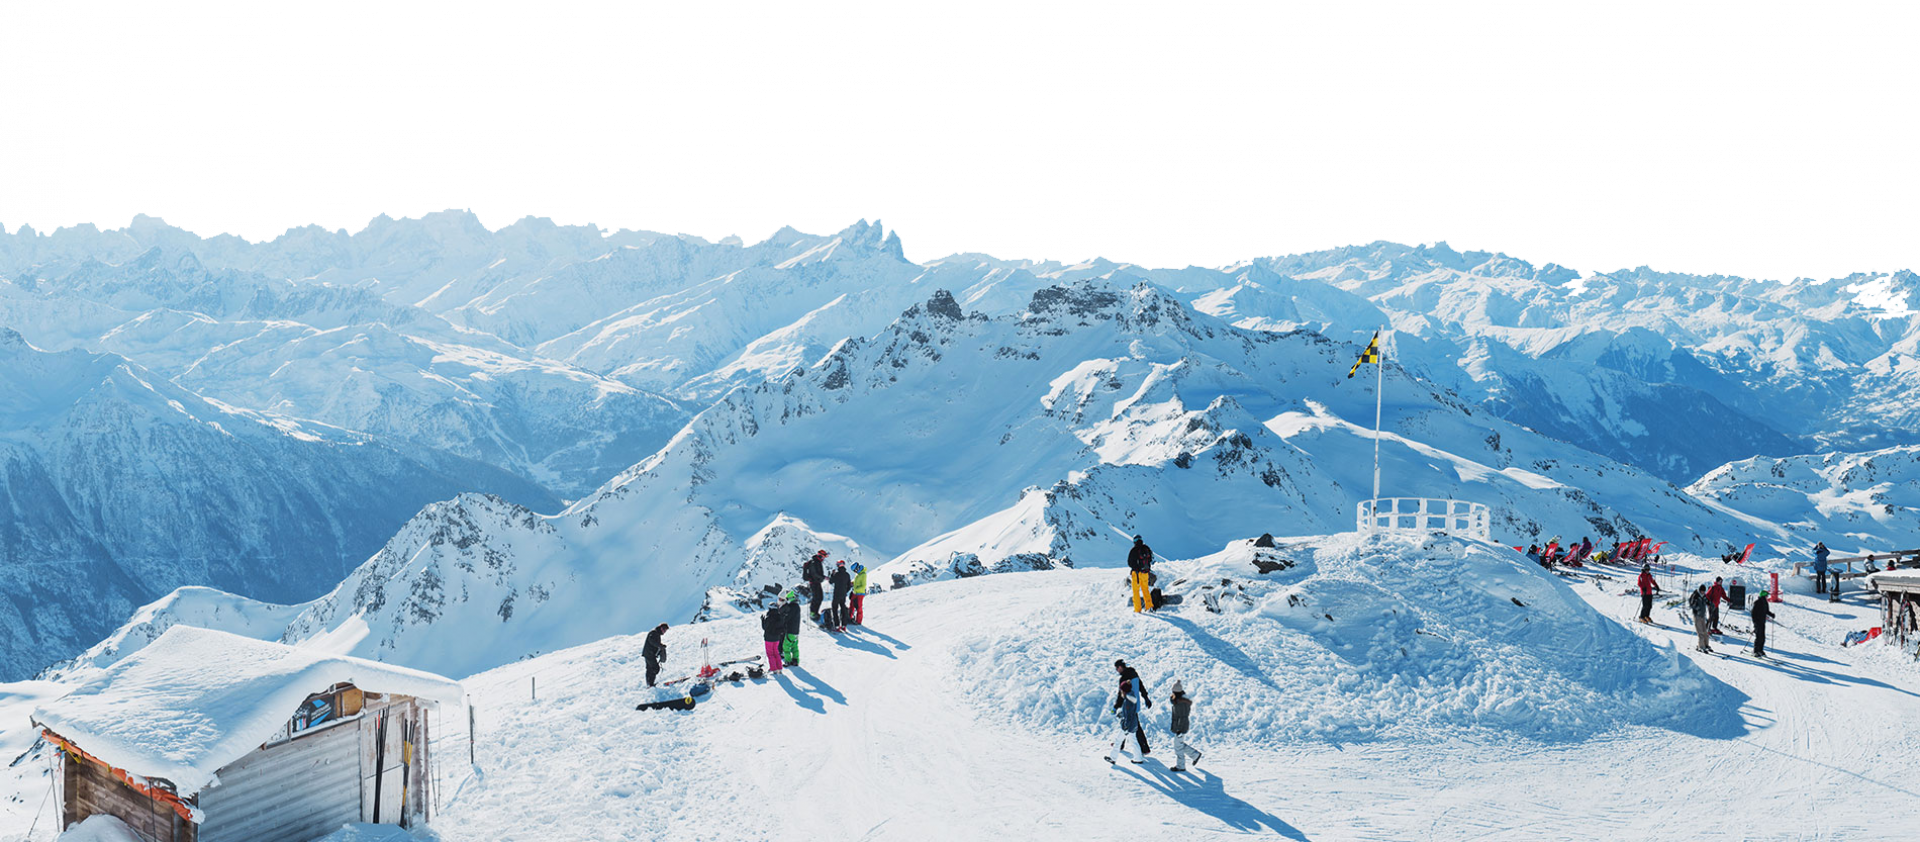 Location hébergement ski Courchevel & Méribel